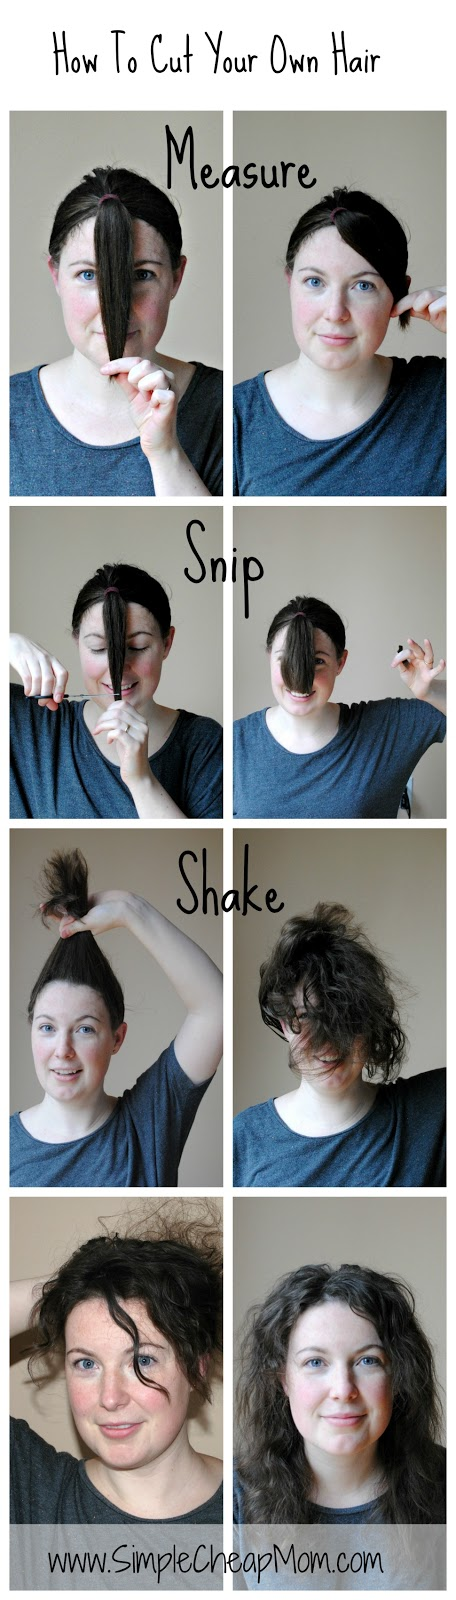 How to cut your own hair solutioingenieria Choice Image